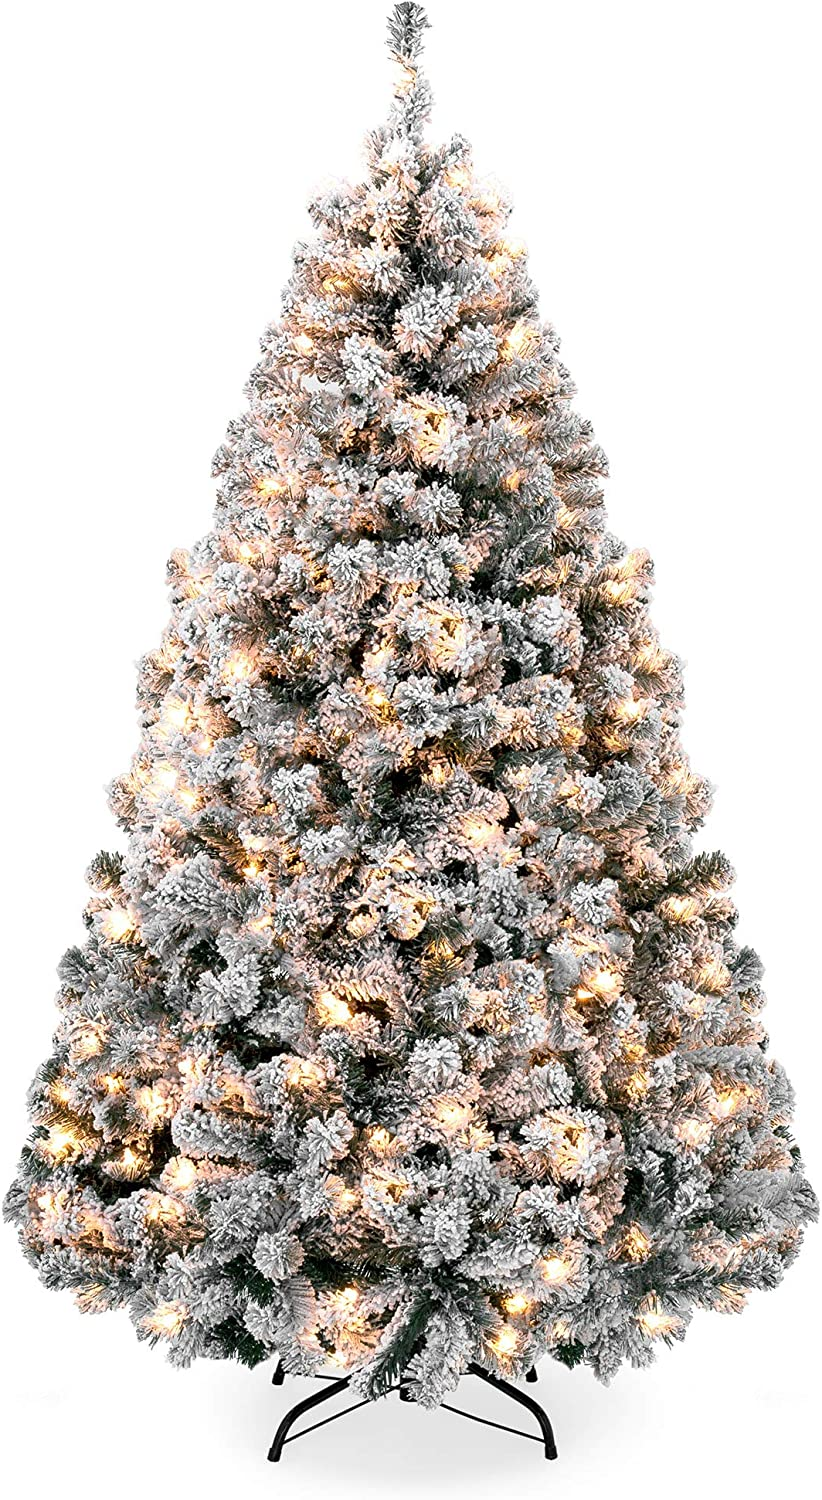 Best Choice Products 6ft Pre-Lit Snow Flocked Hinged Artificial Christmas Pine Tree Holiday Decor w/ 250 Warm White Lights